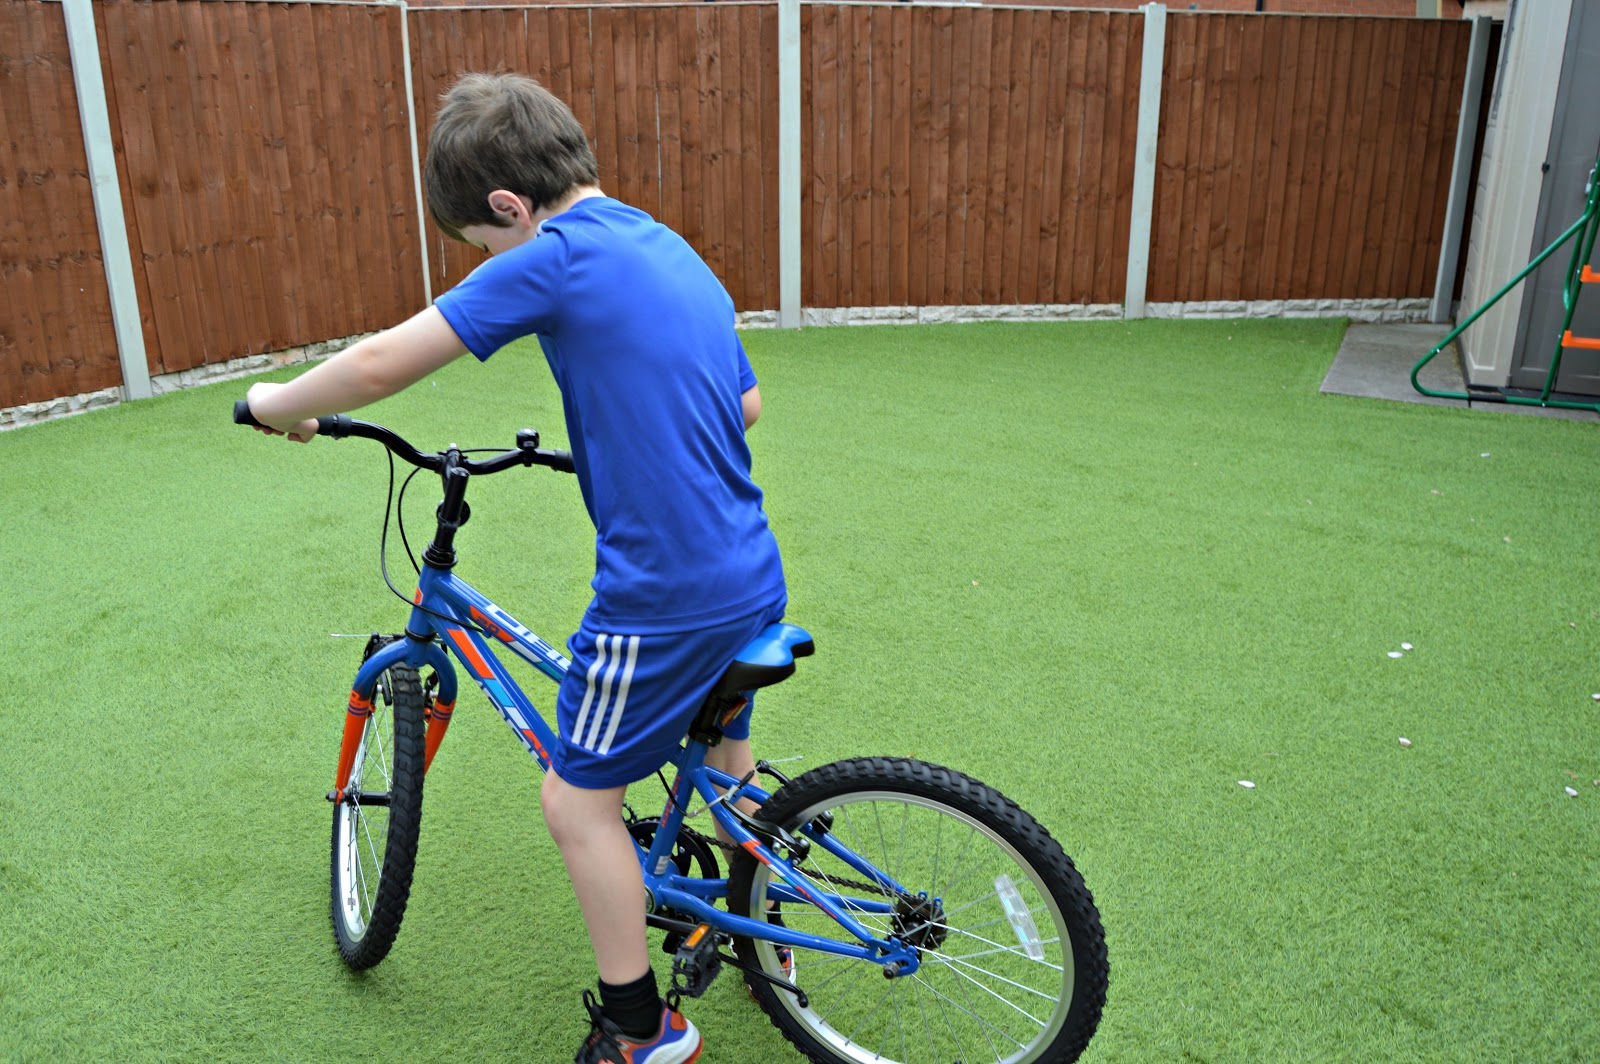 Boy practising on his bike